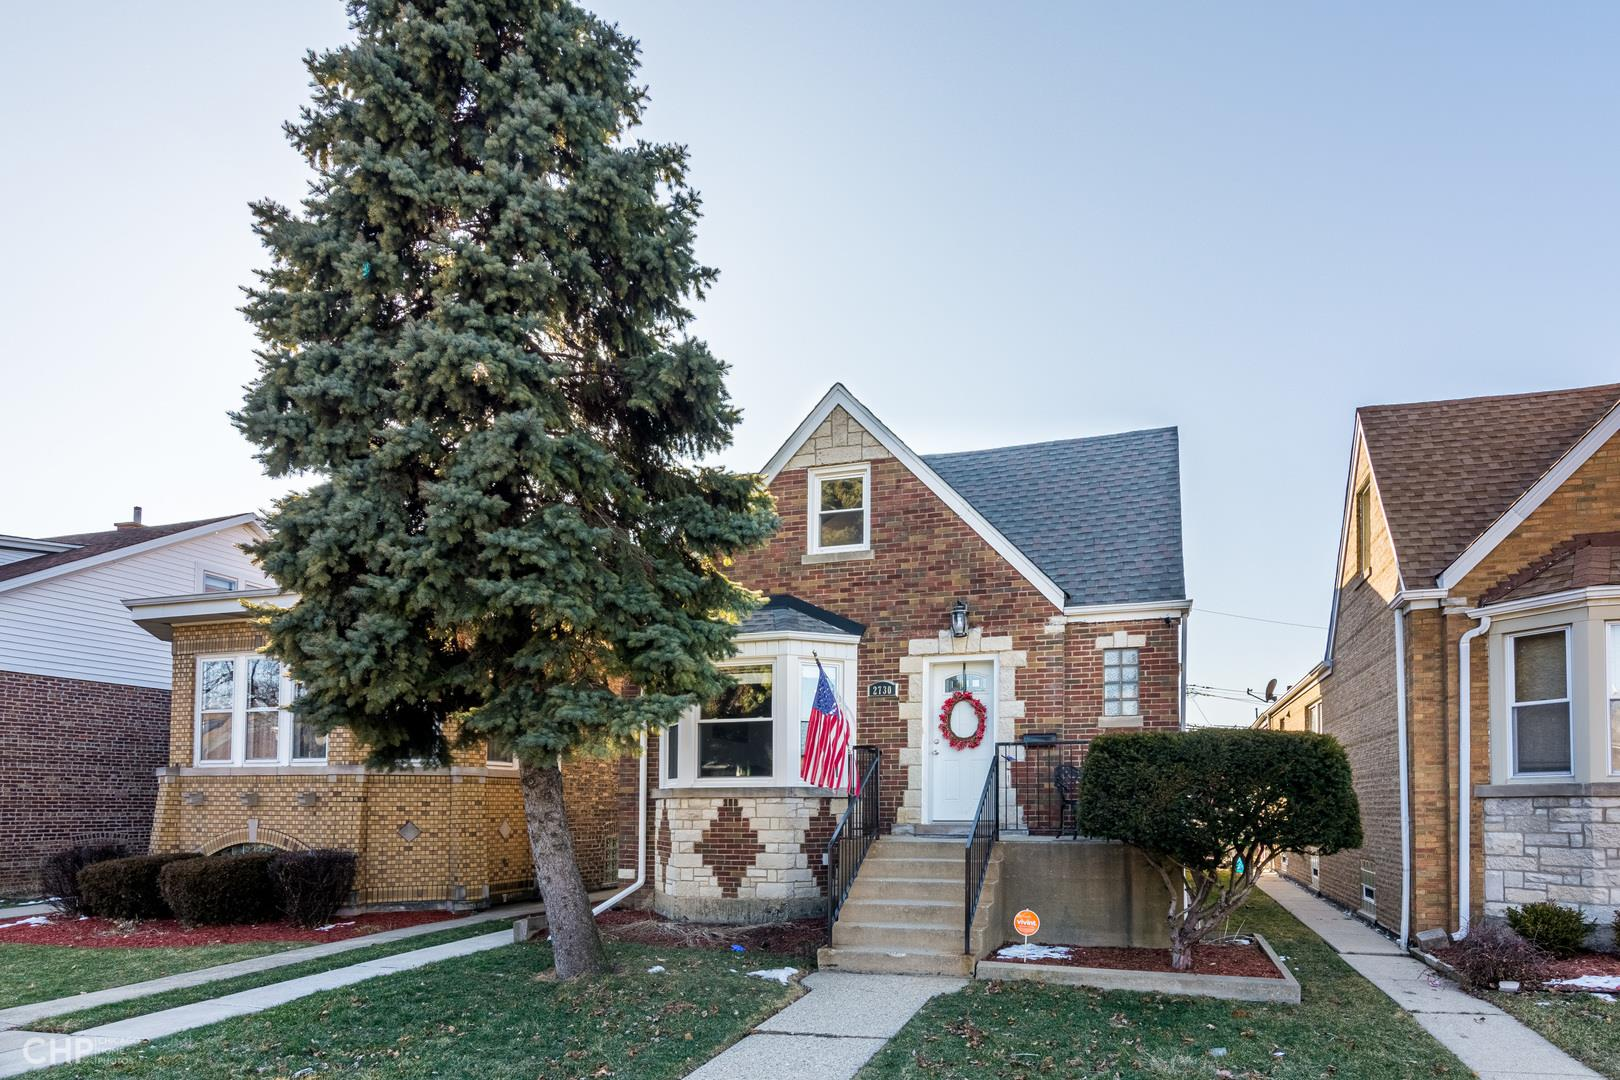 2730 N Mango Avenue, Chicago, IL 60639 - #: 10975475